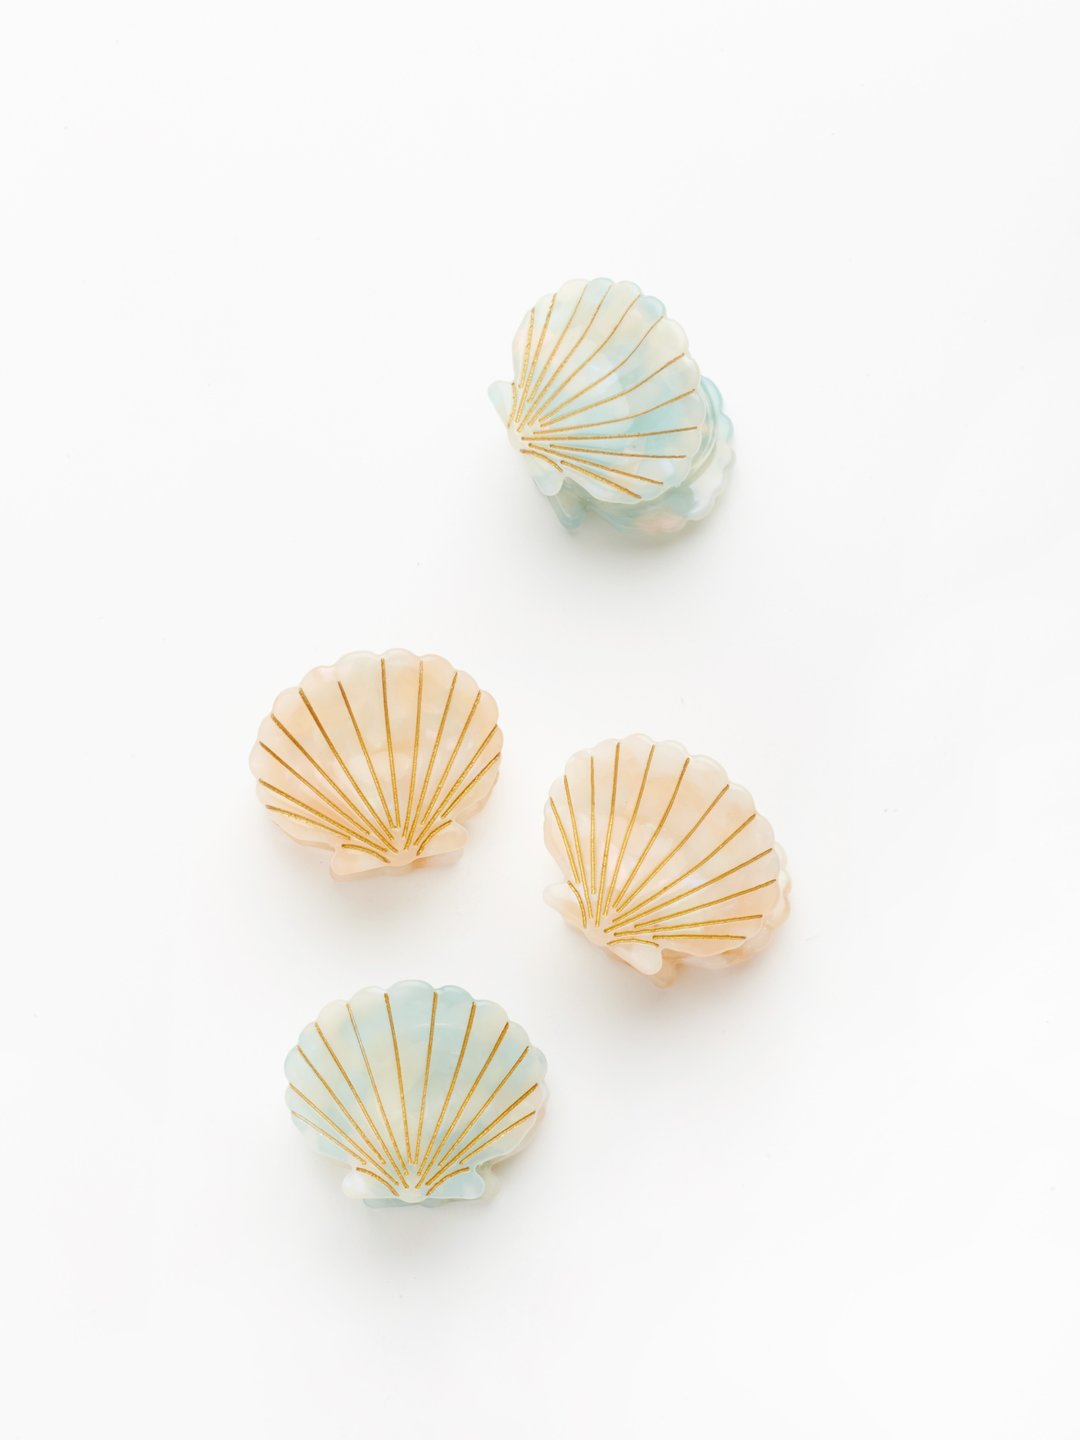 Shell Clips by Valet Studio